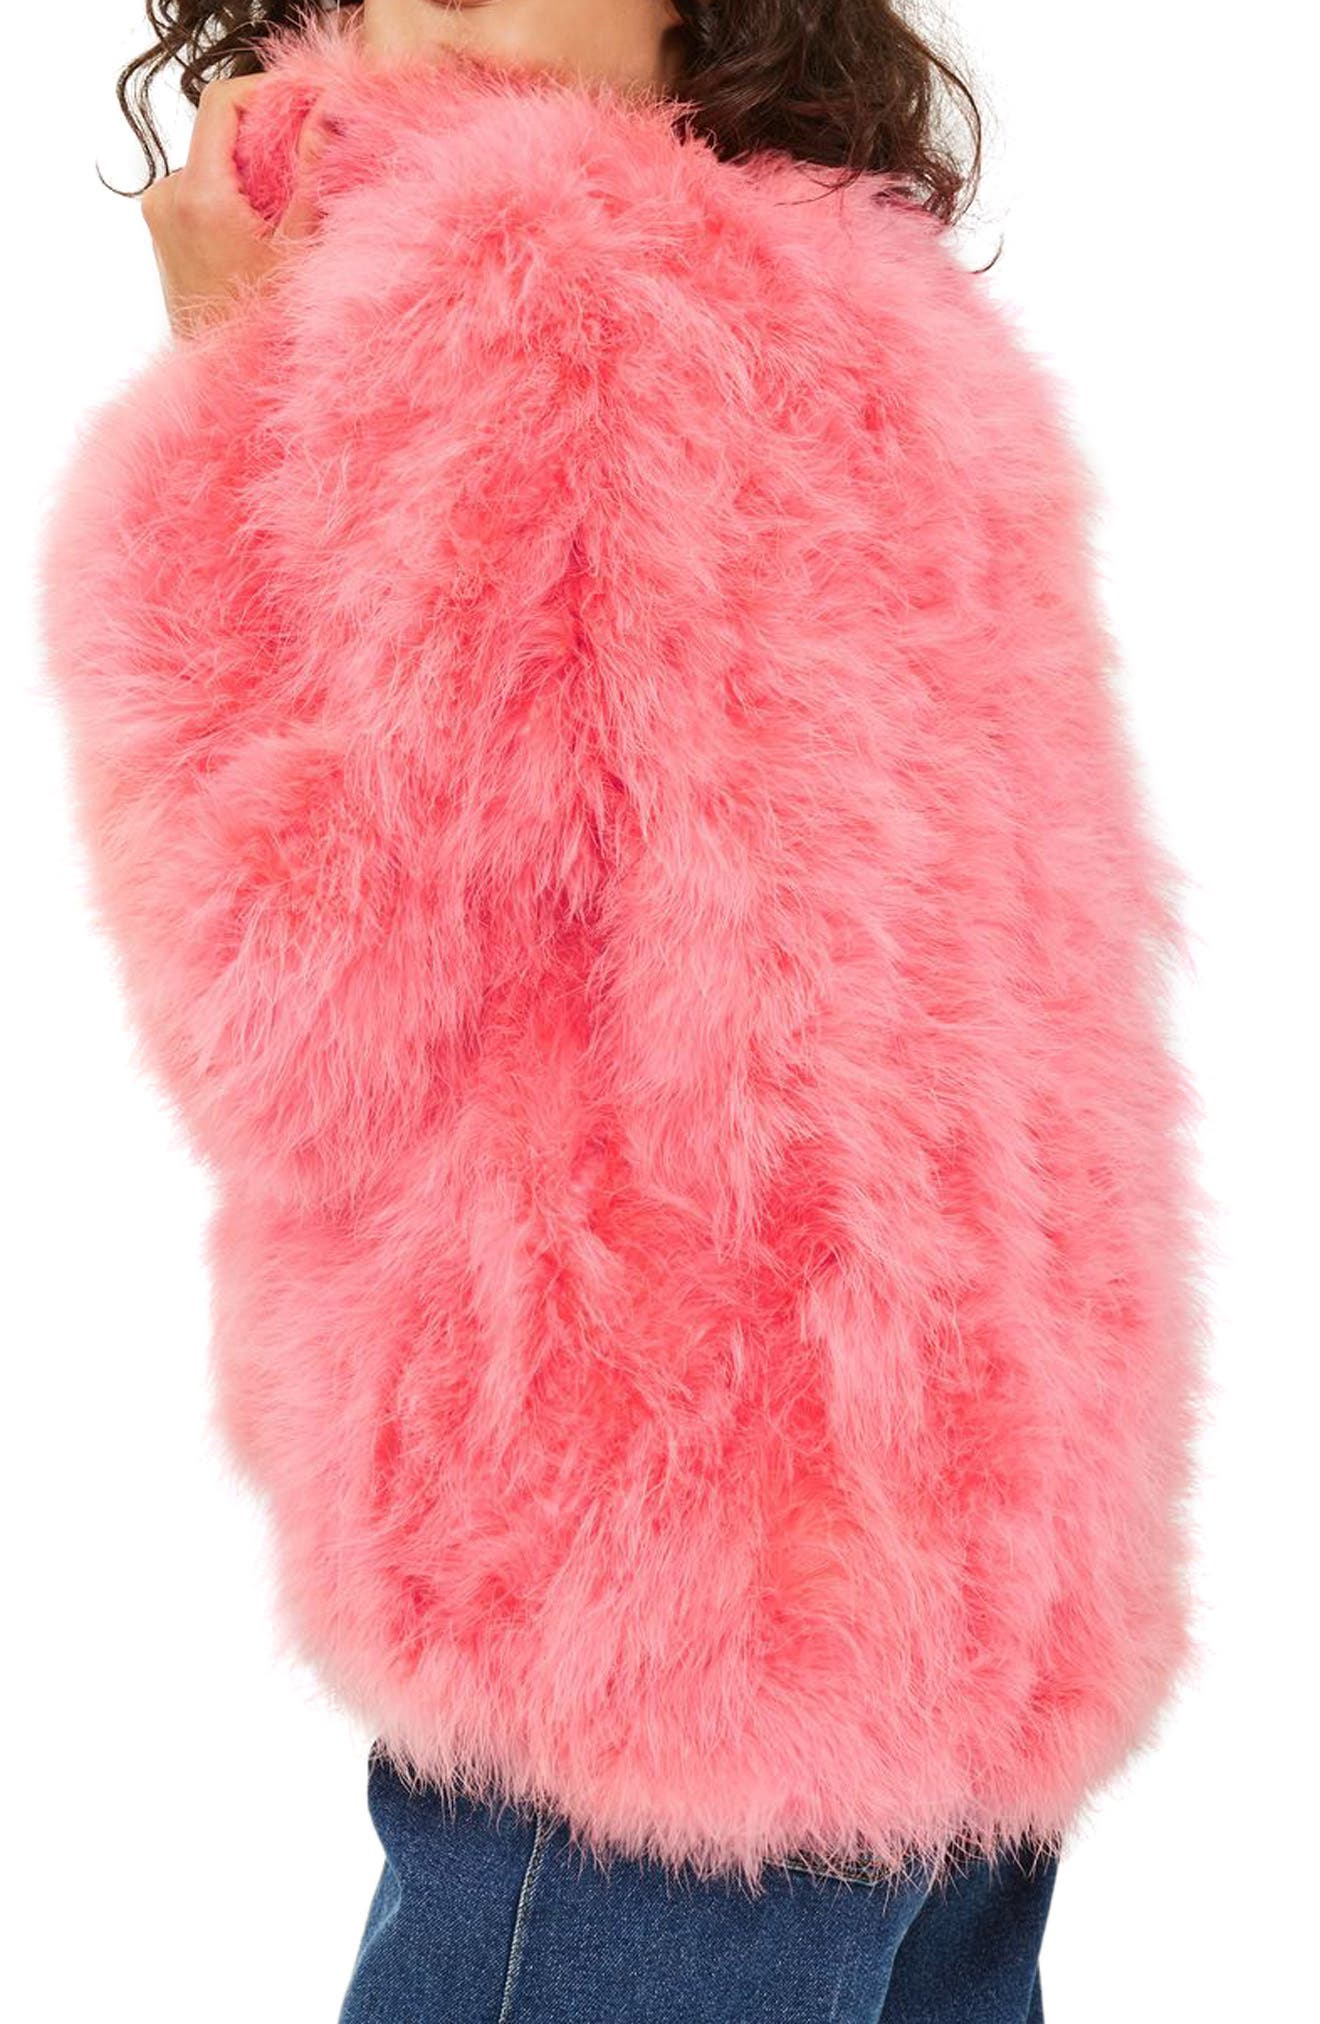 Marabou Feather Jacket,                             Alternate thumbnail 2, color,                             Pink